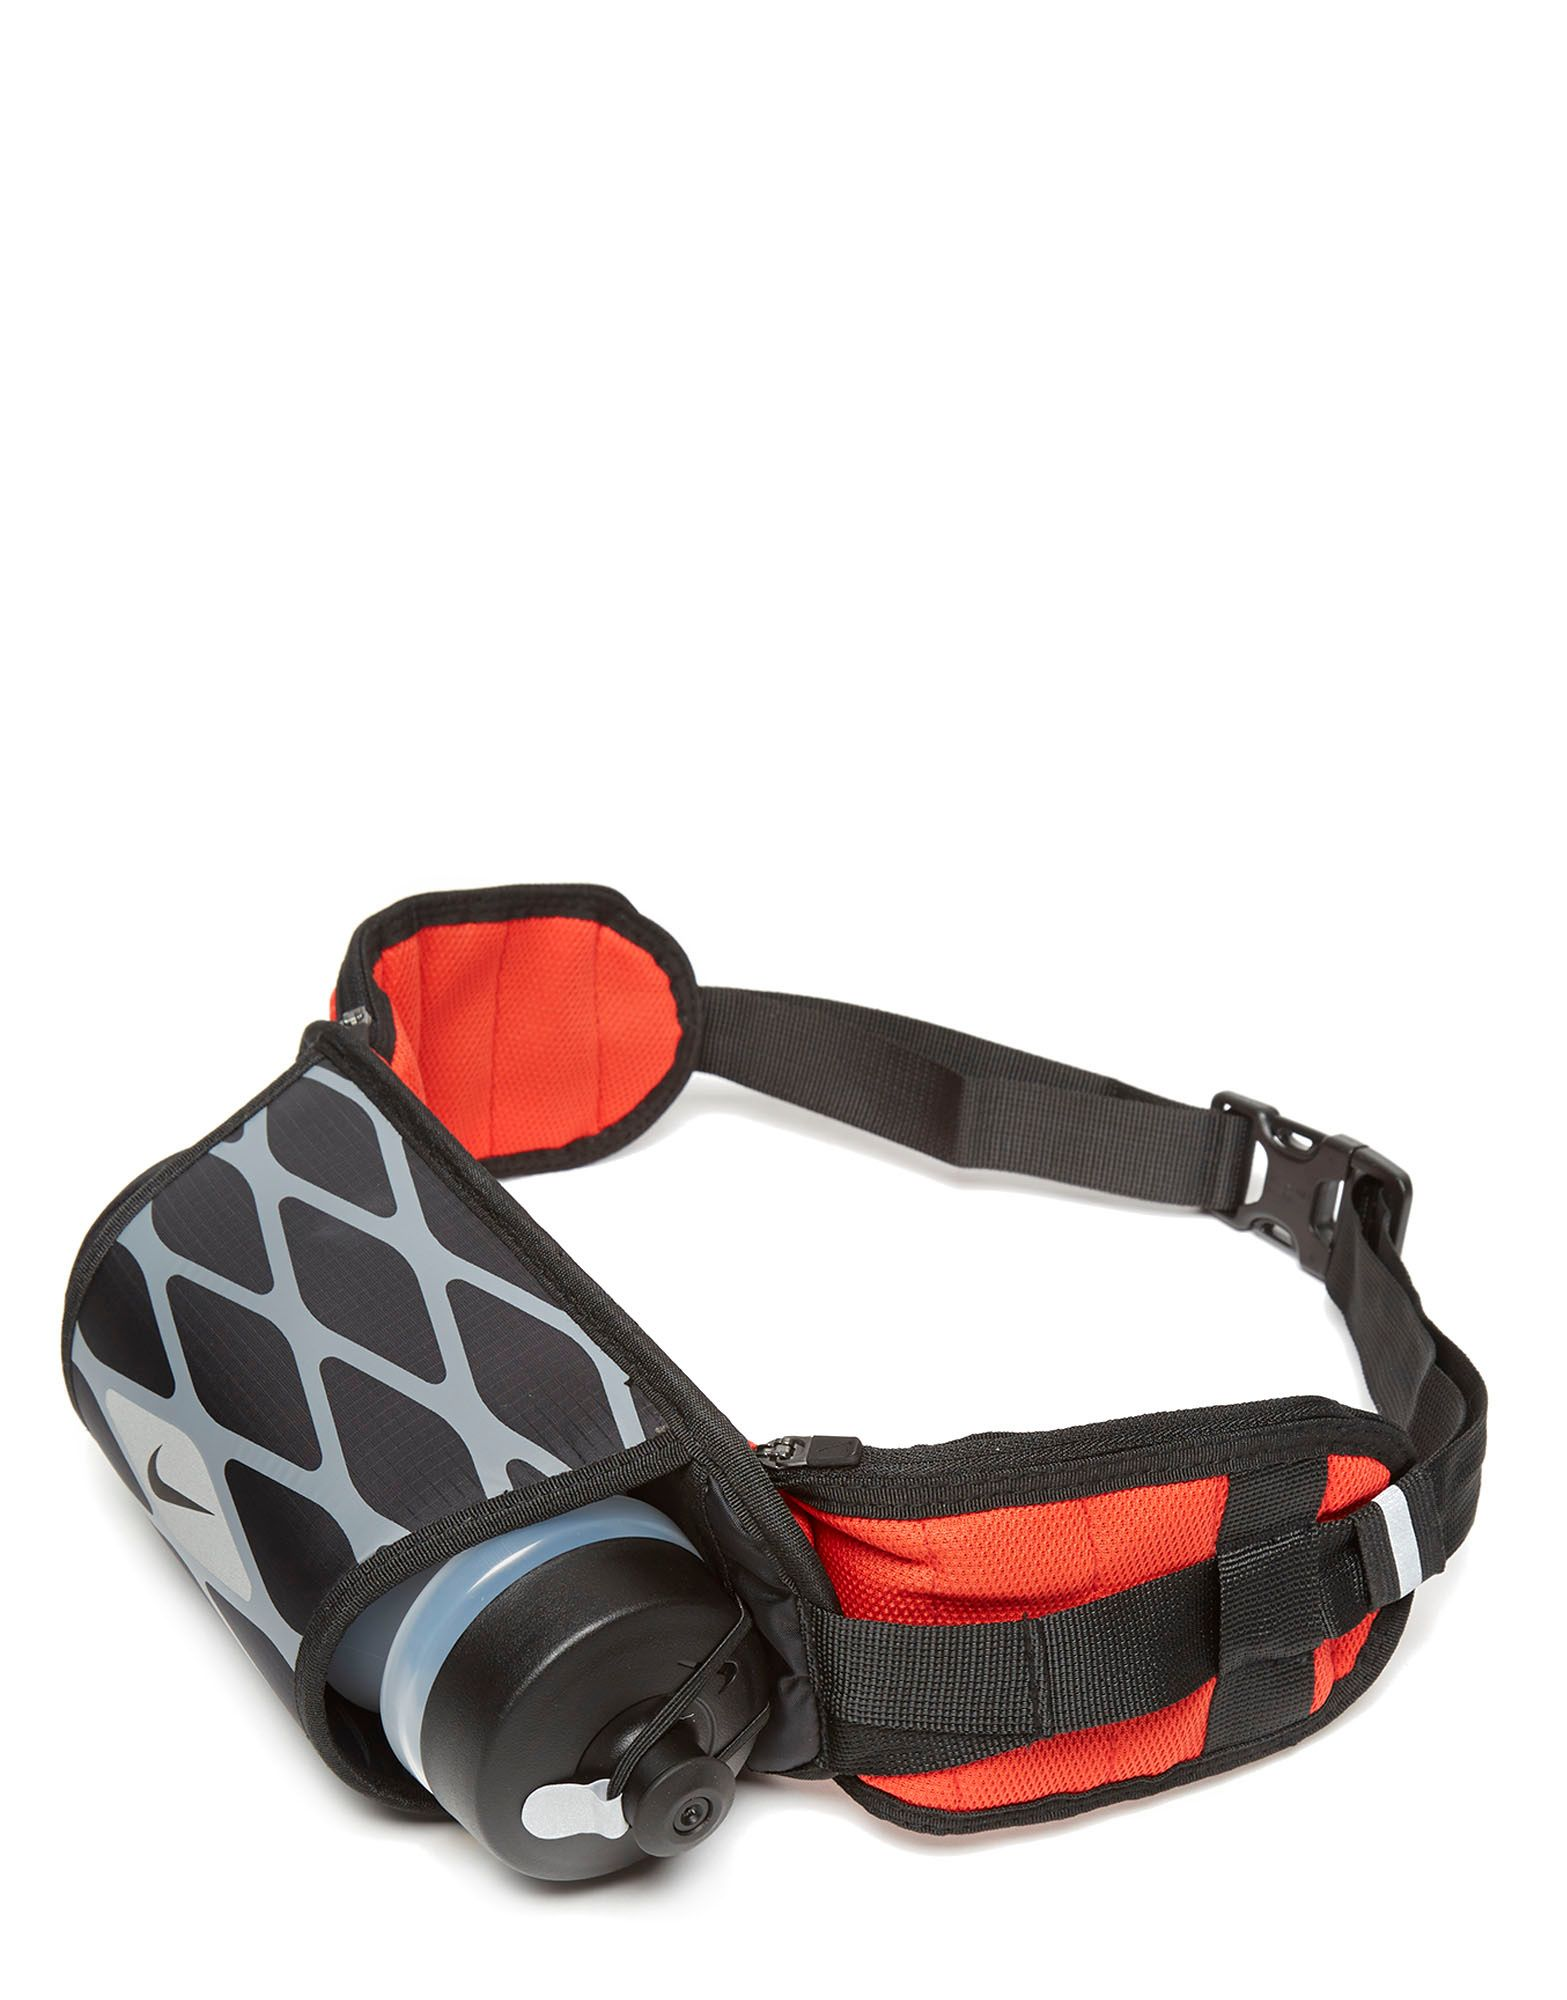 Nike Vapor Hydration Water Pack